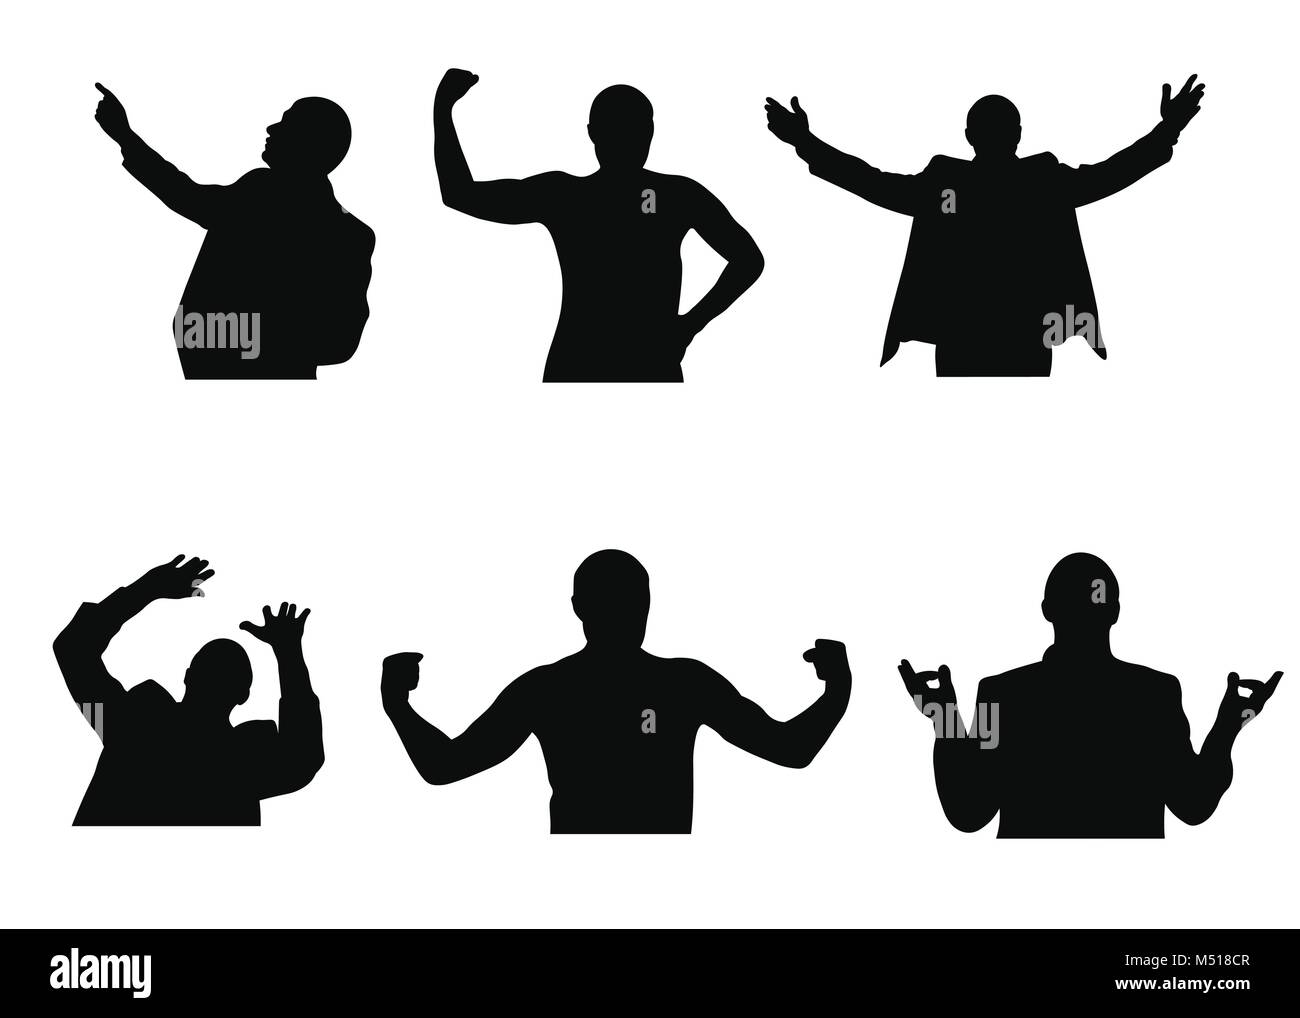 Set of silhouettes of man looking up, meditating, welcoming, having fear and showing muscles - Stock Vector